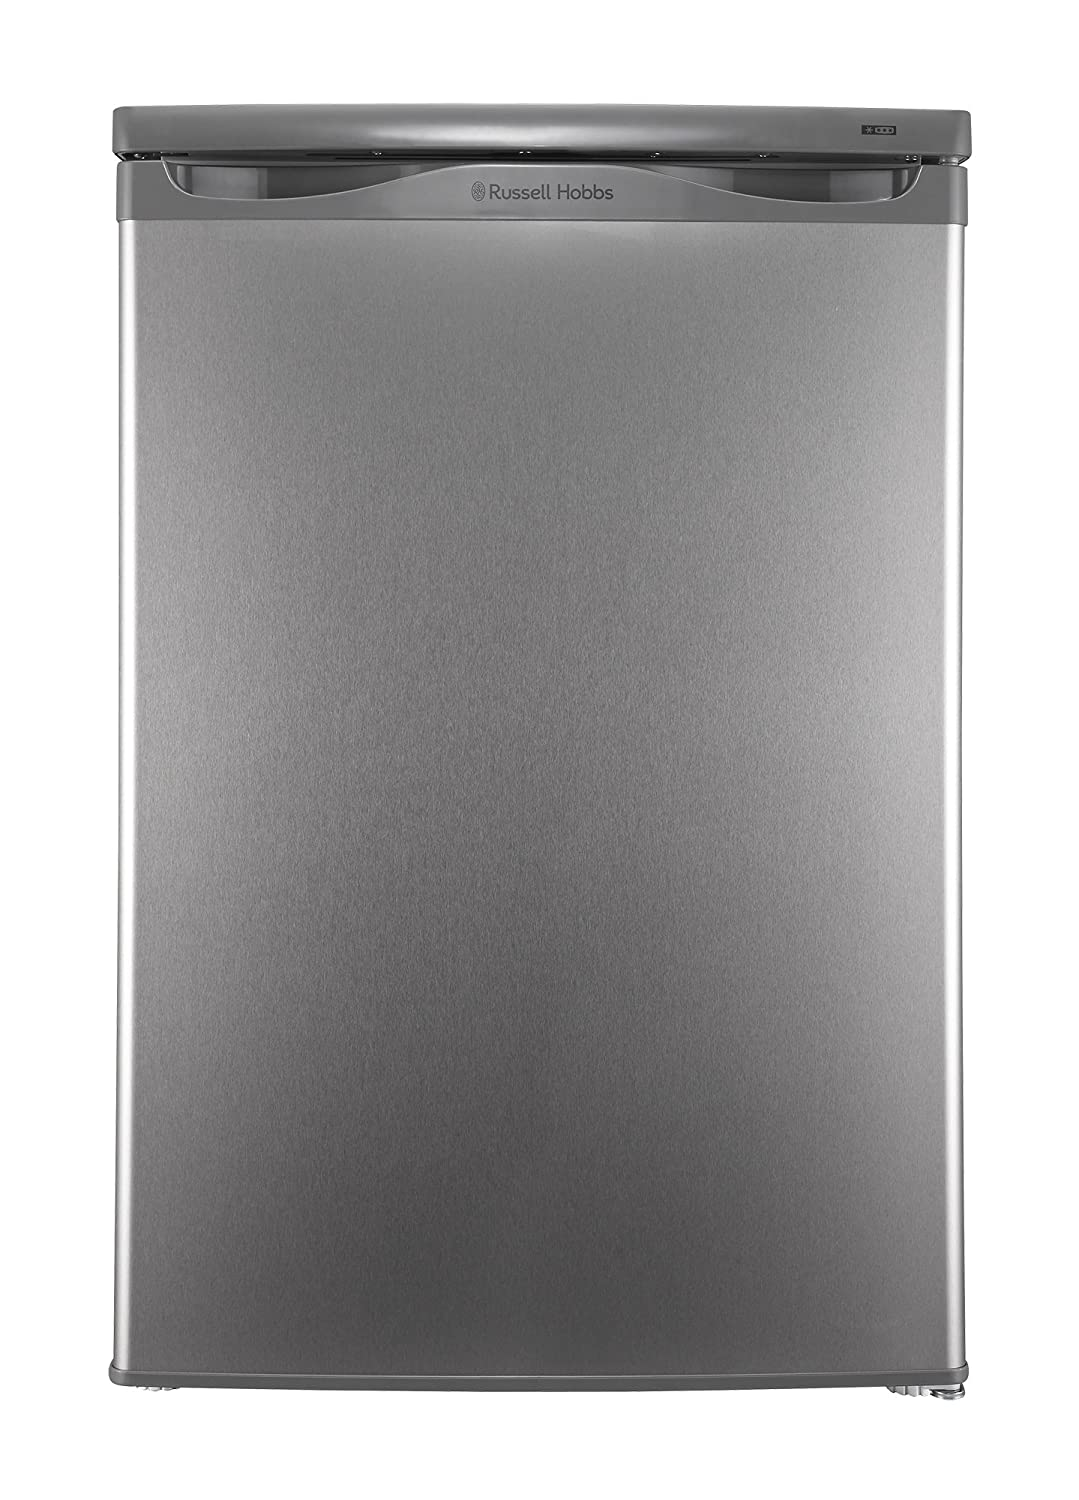 Russell Hobbs RHUCFZ55SS Freestanding Effect Under Counter Freezer, Stainless Steel [Energy Class A+]